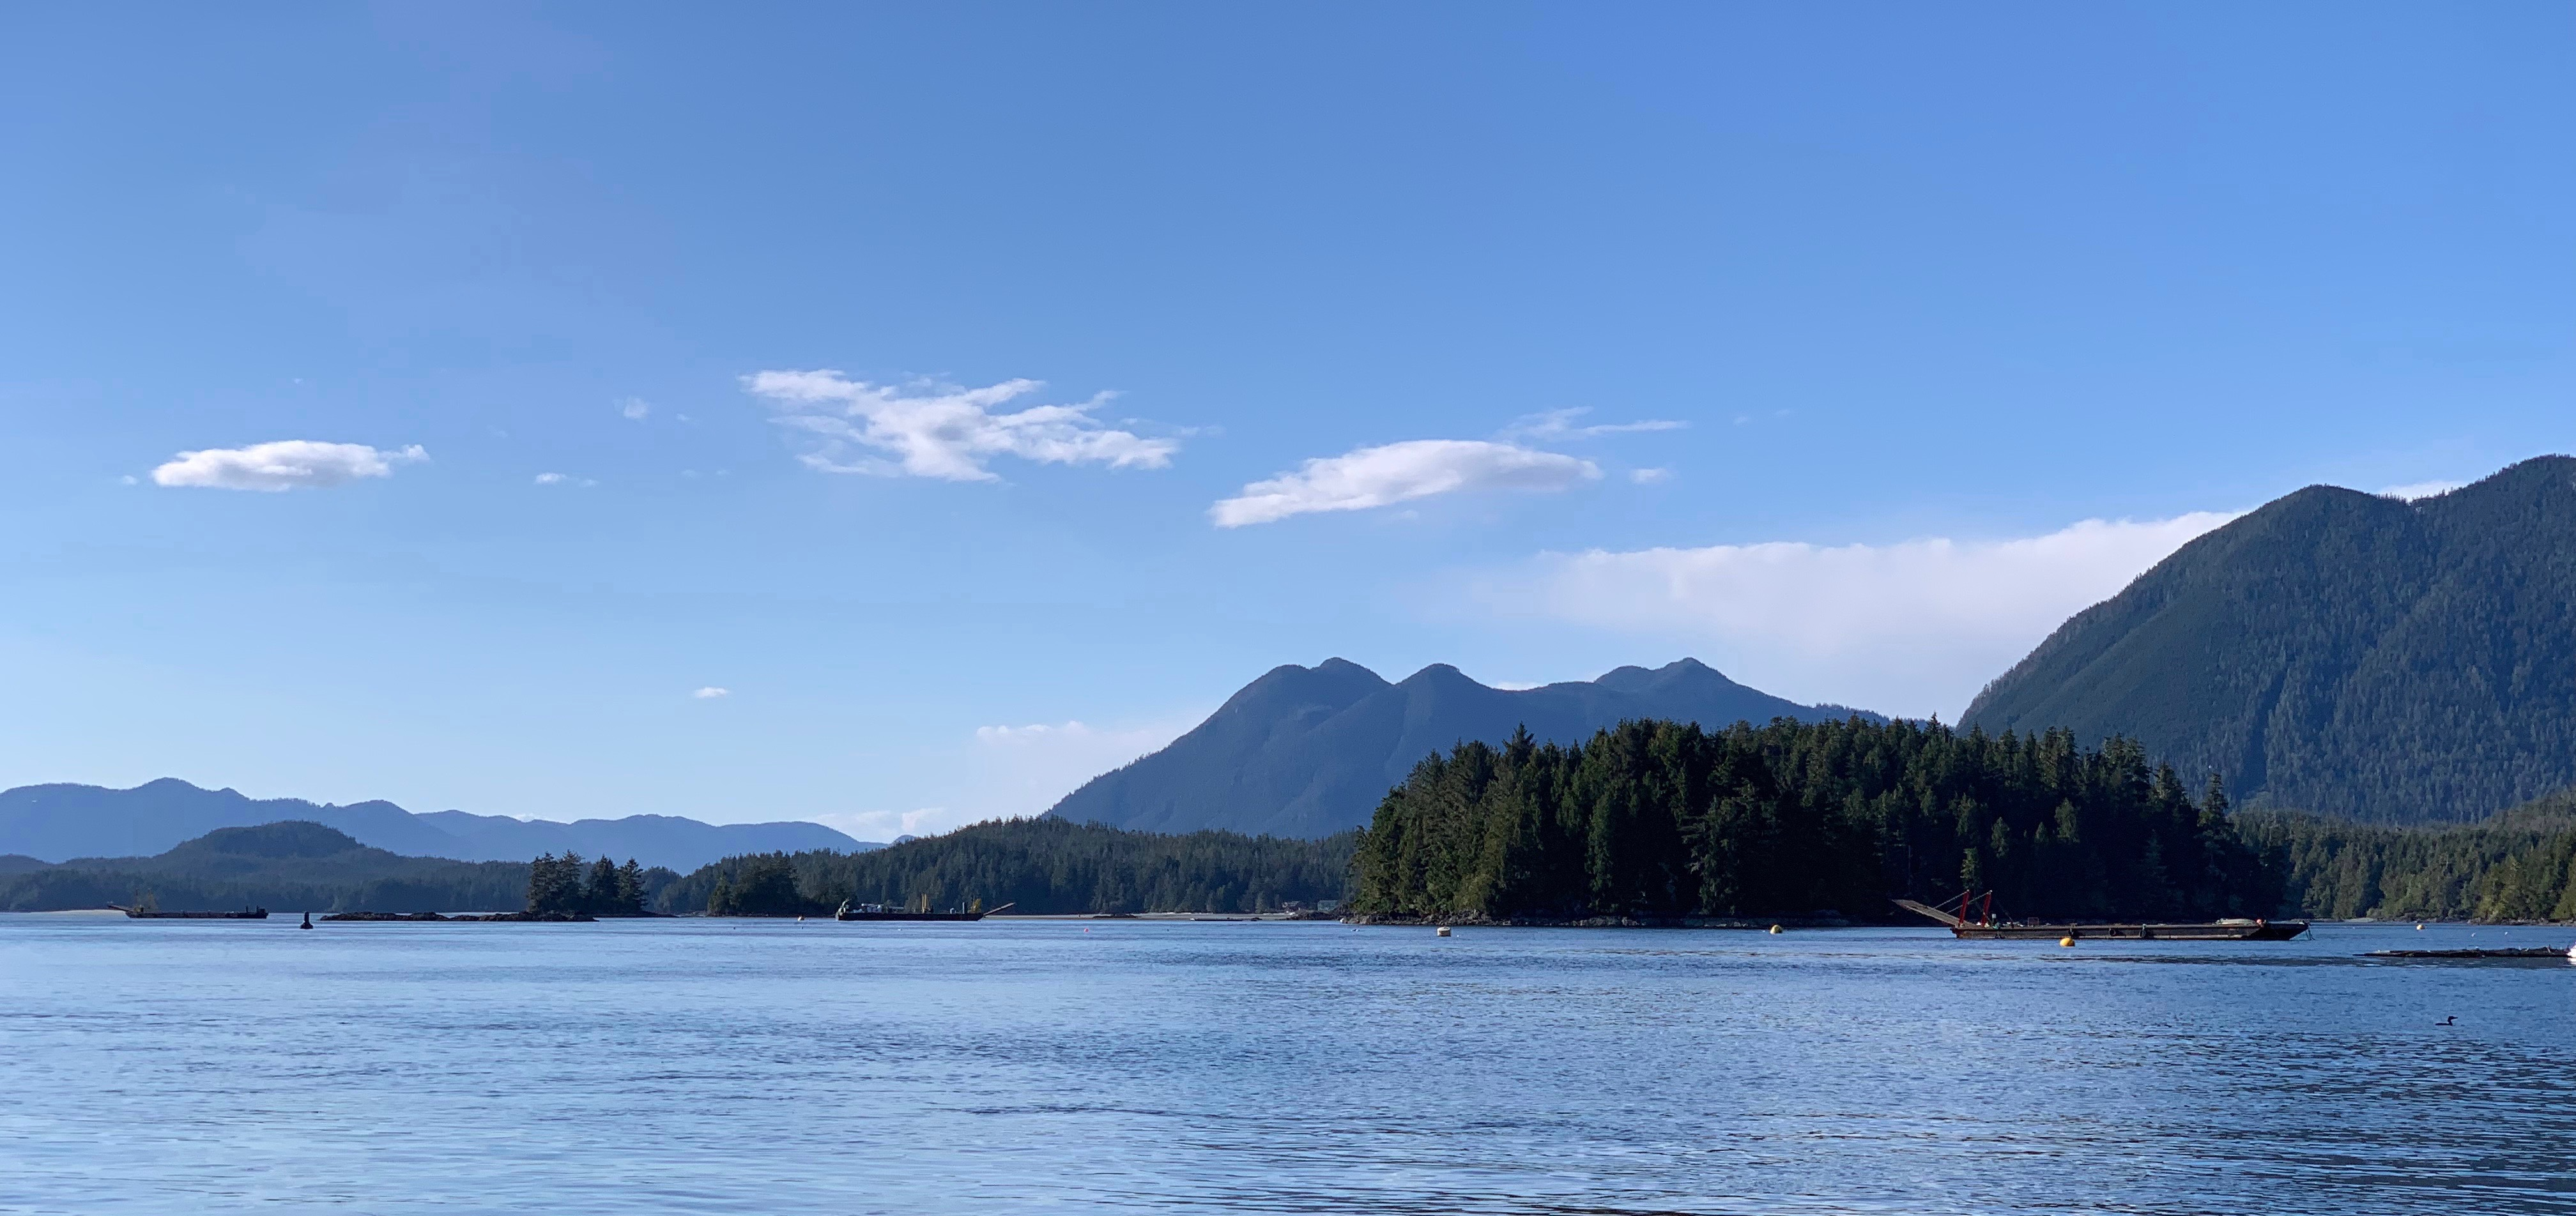 Tofino Resort + Marina – Inspired by Adventure, Surrounded by Natural Beauty